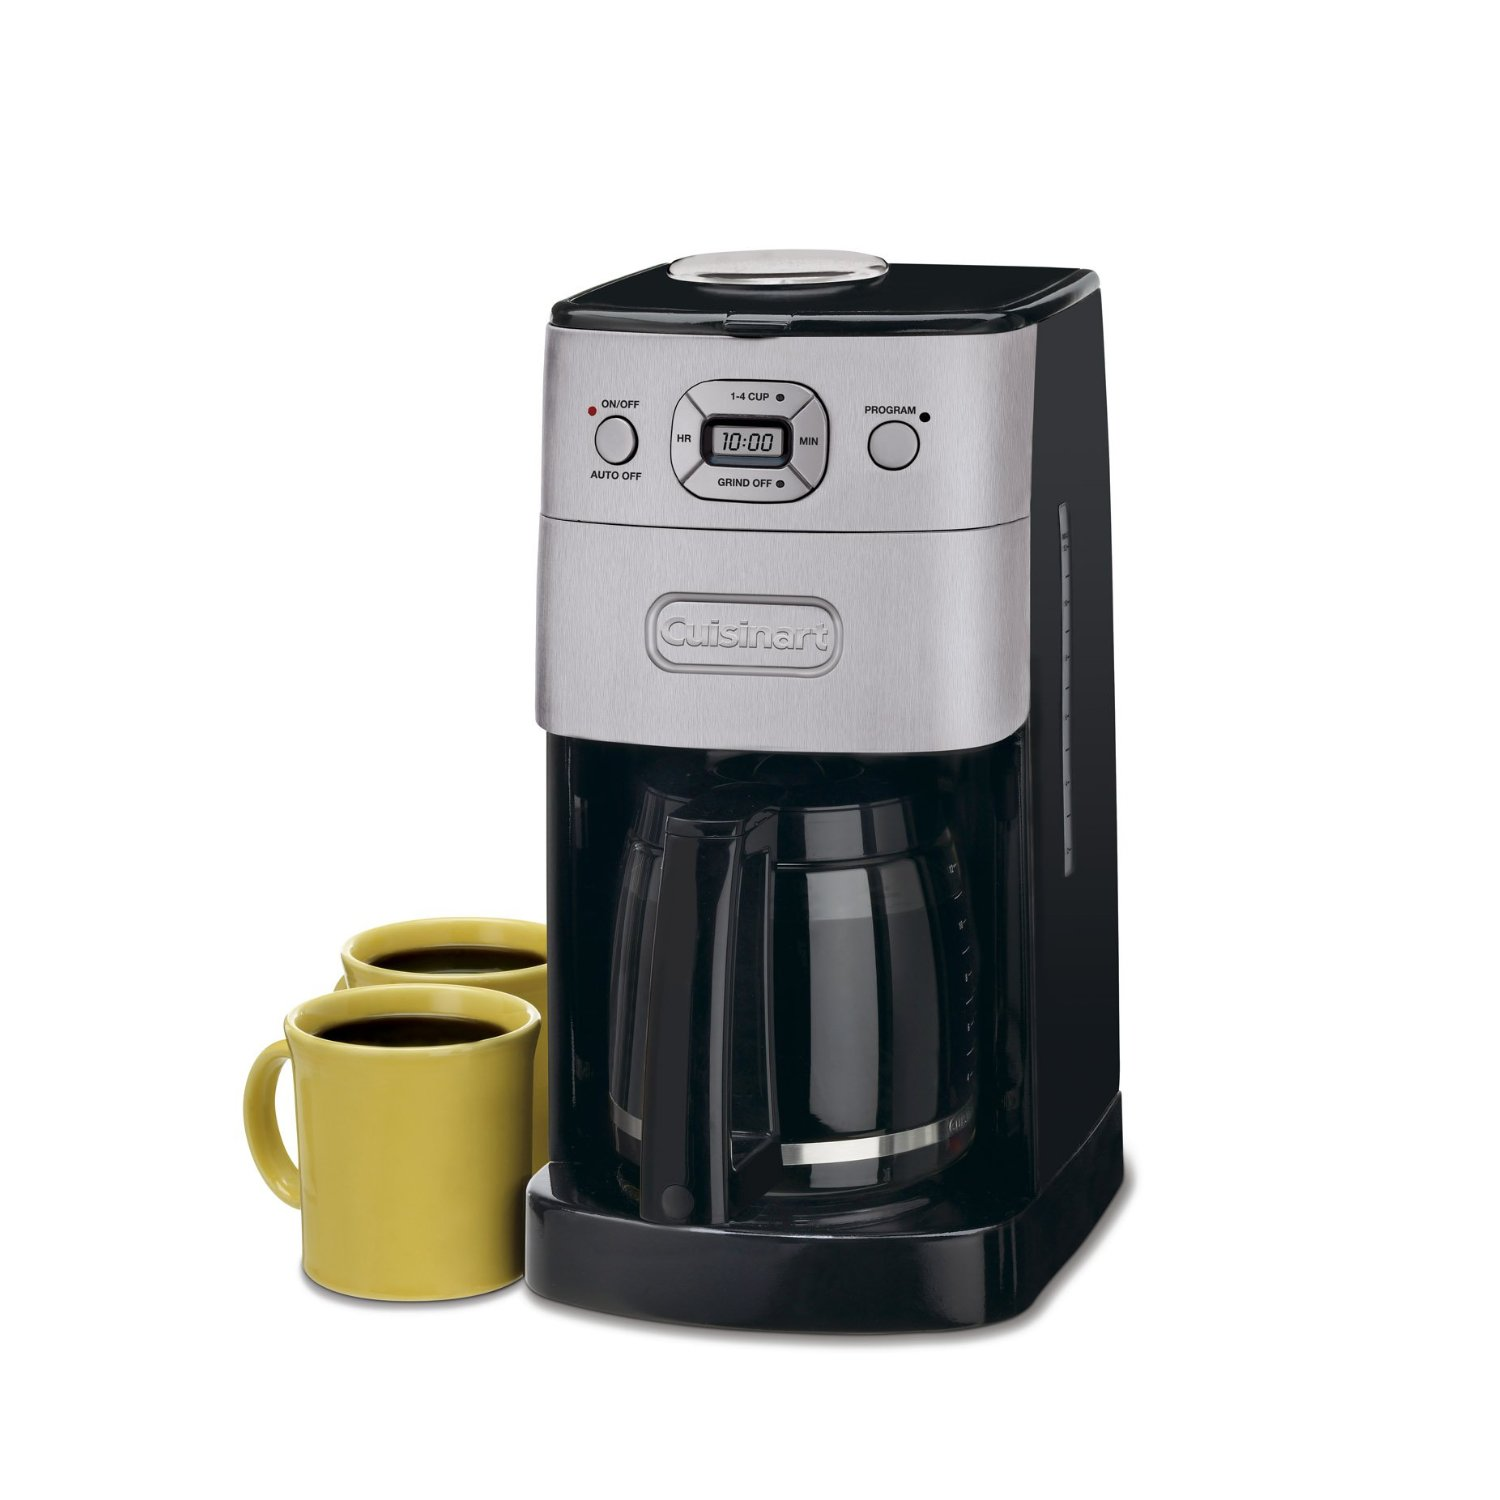 Best Coffee maker with Grinder Cuisinart